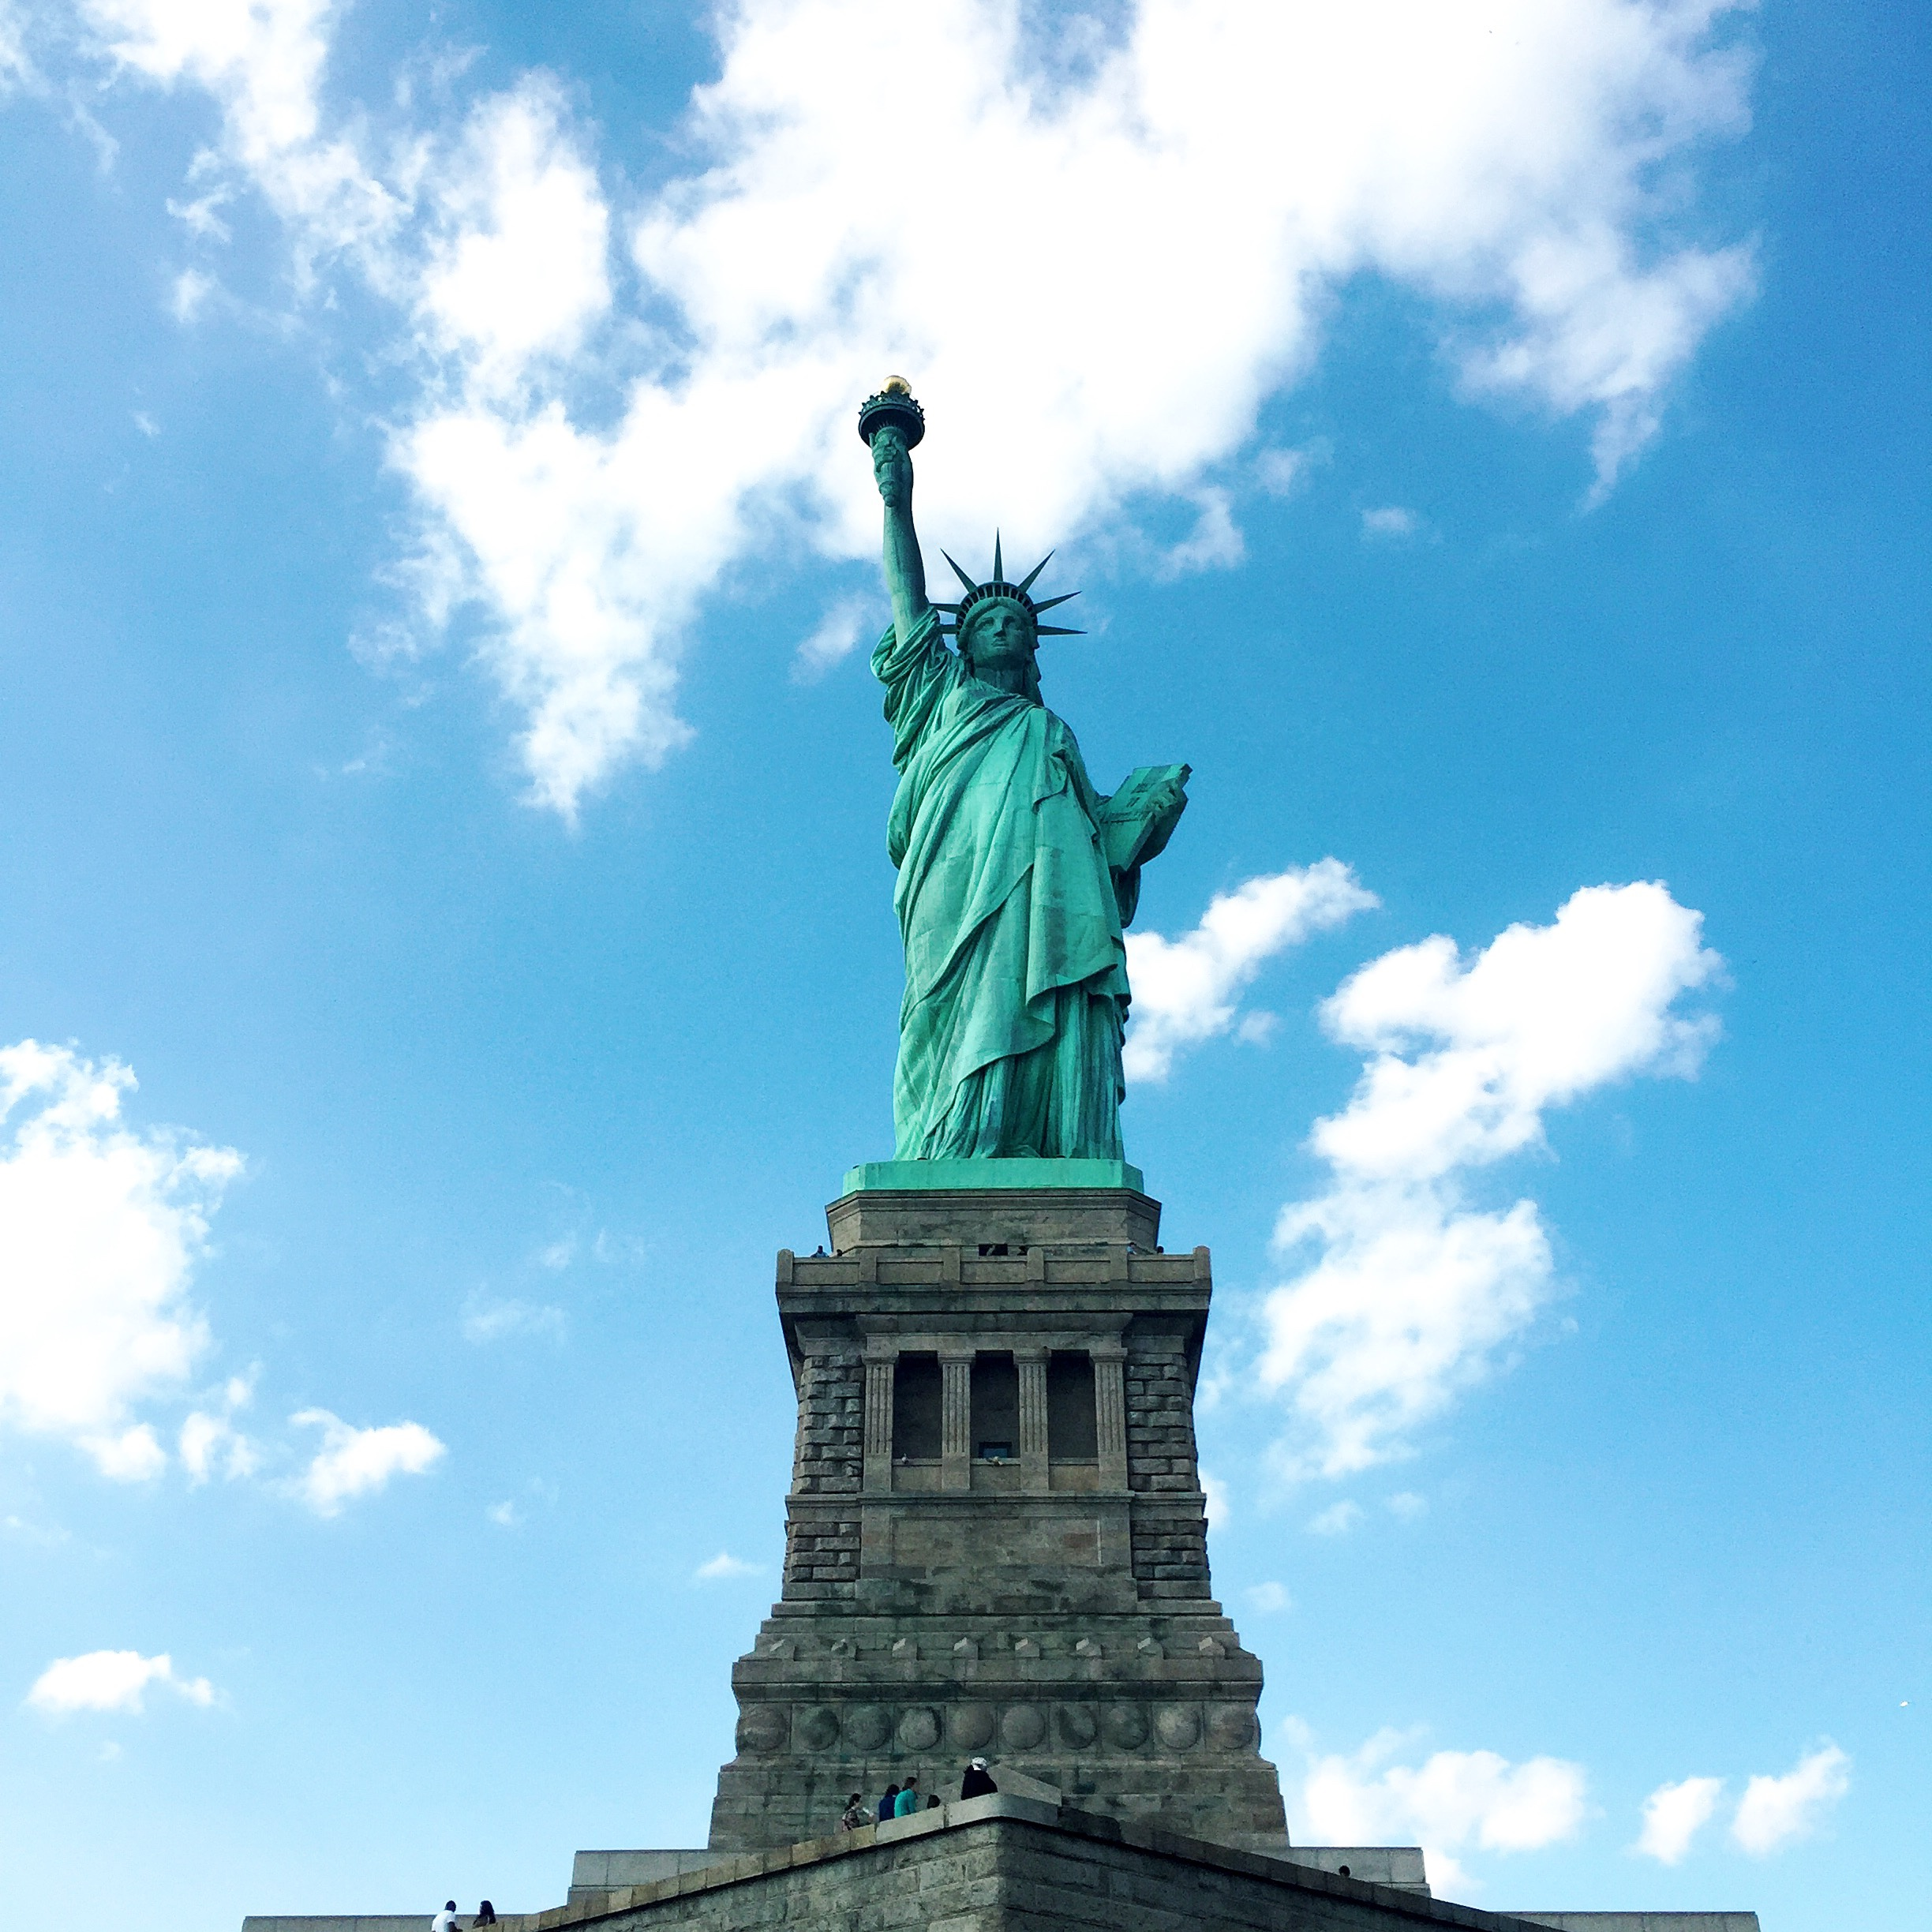 The Statue of Liberty against a blue sky